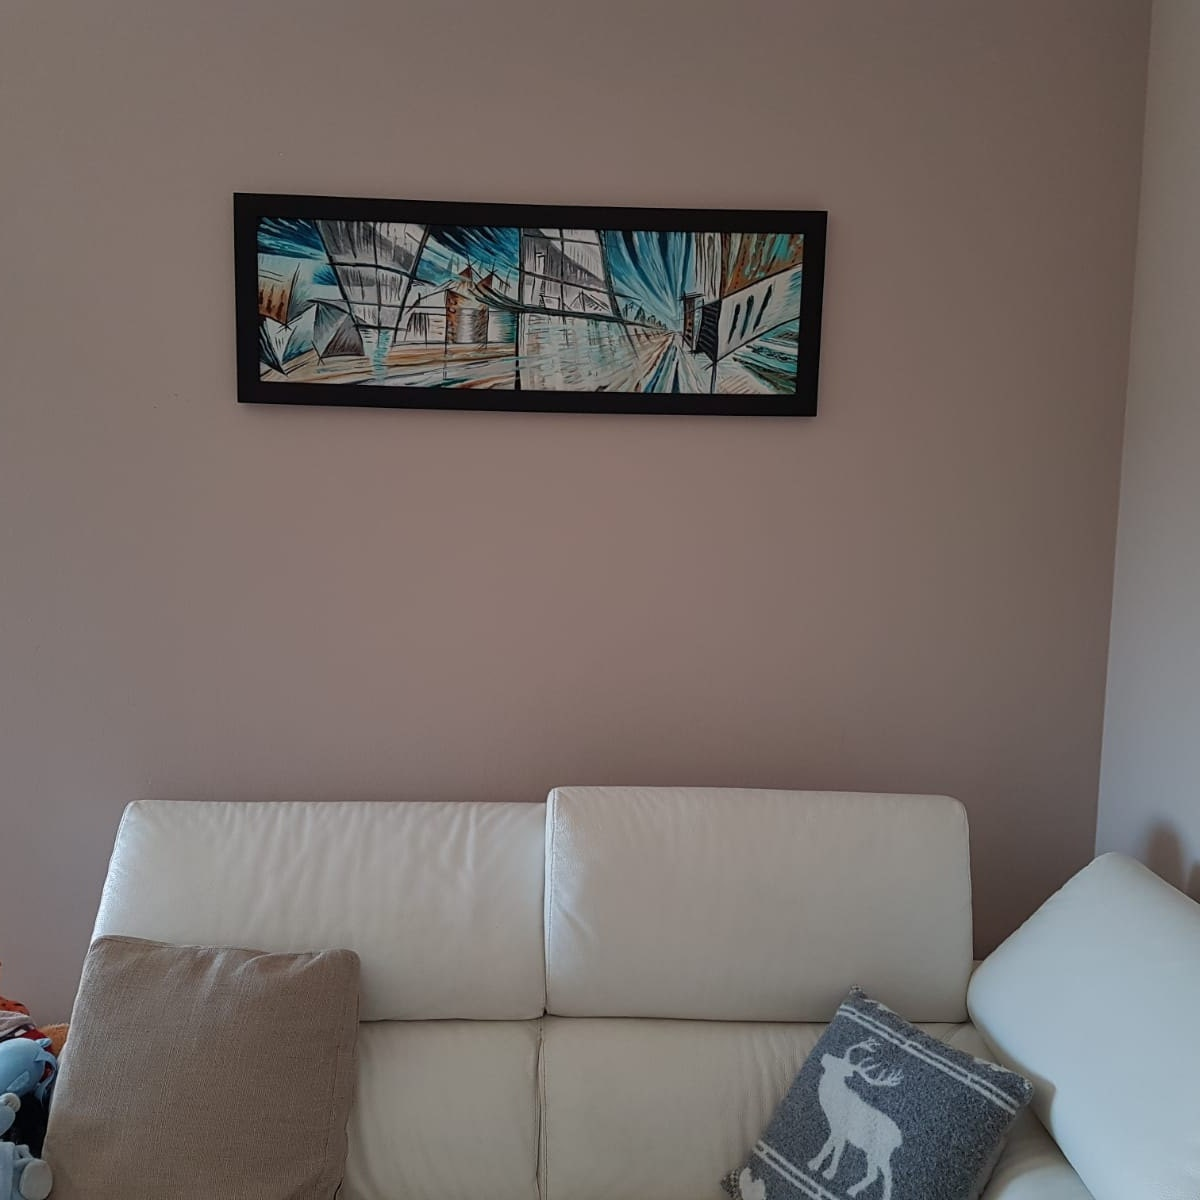 Roberta Gatto added a photo of their purchase